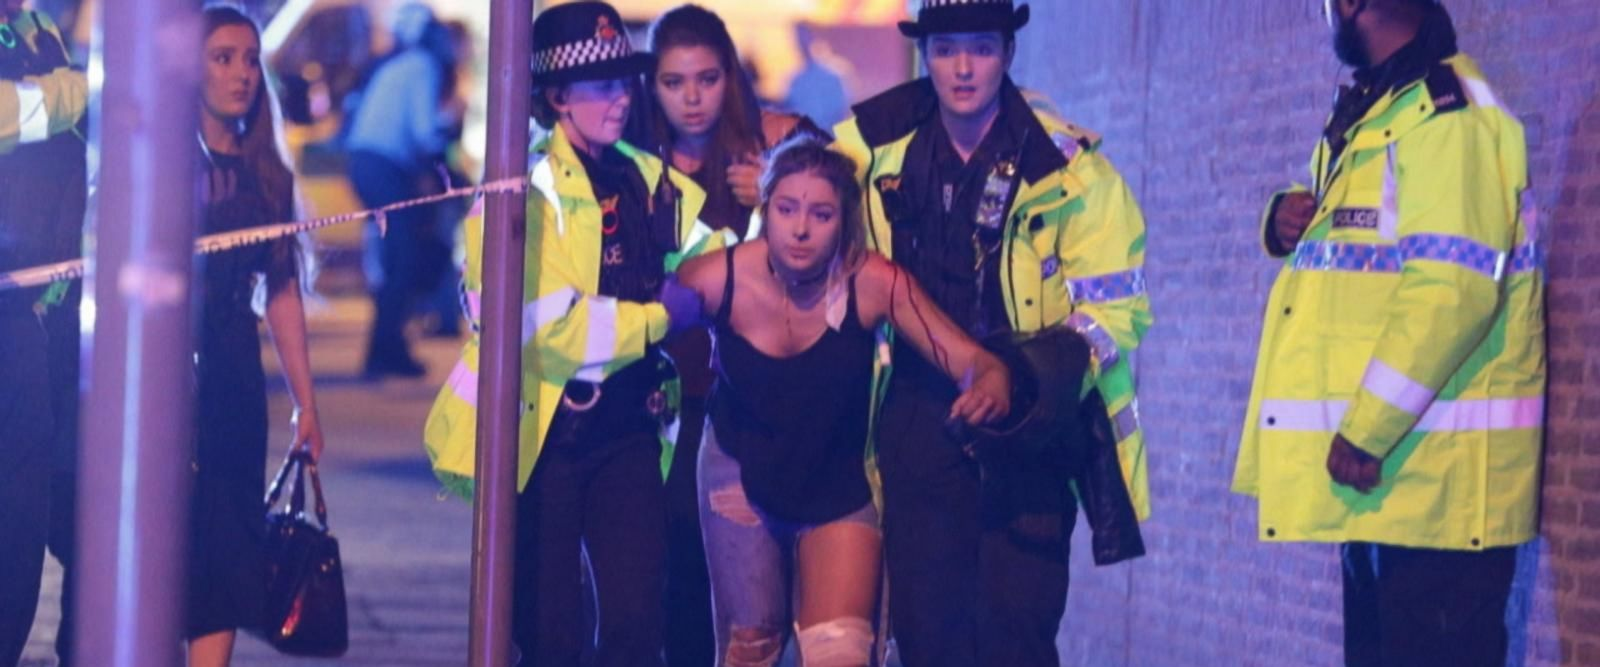 VIDEO: At least 19 dead at Ariana Grande concert in Manchester, England